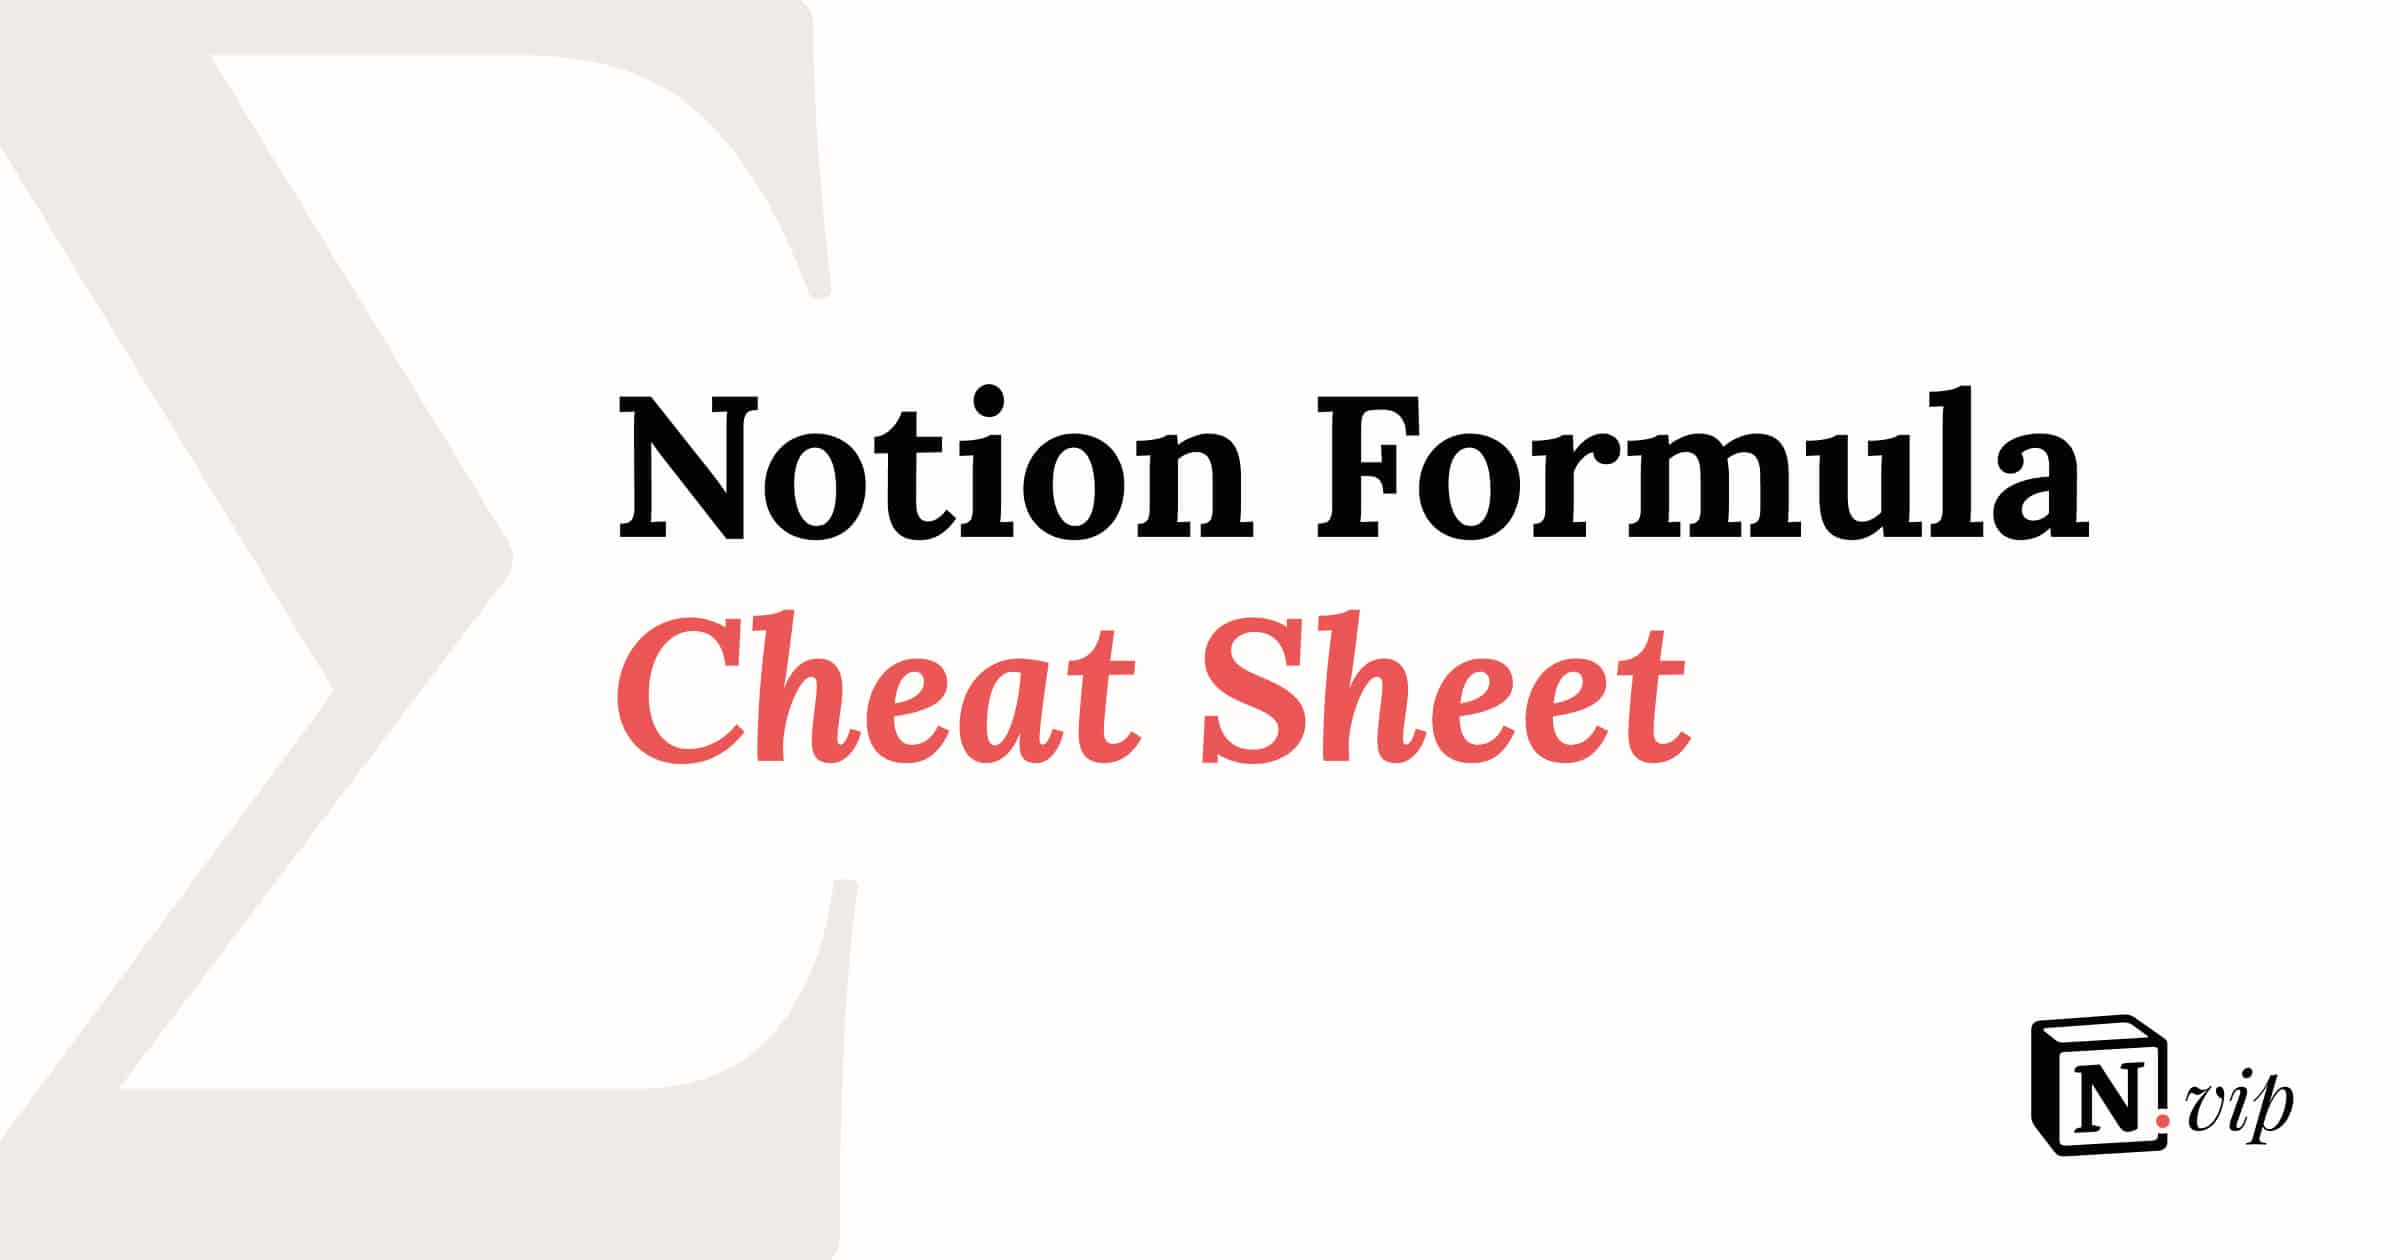 Notion Formula Cheat Sheet